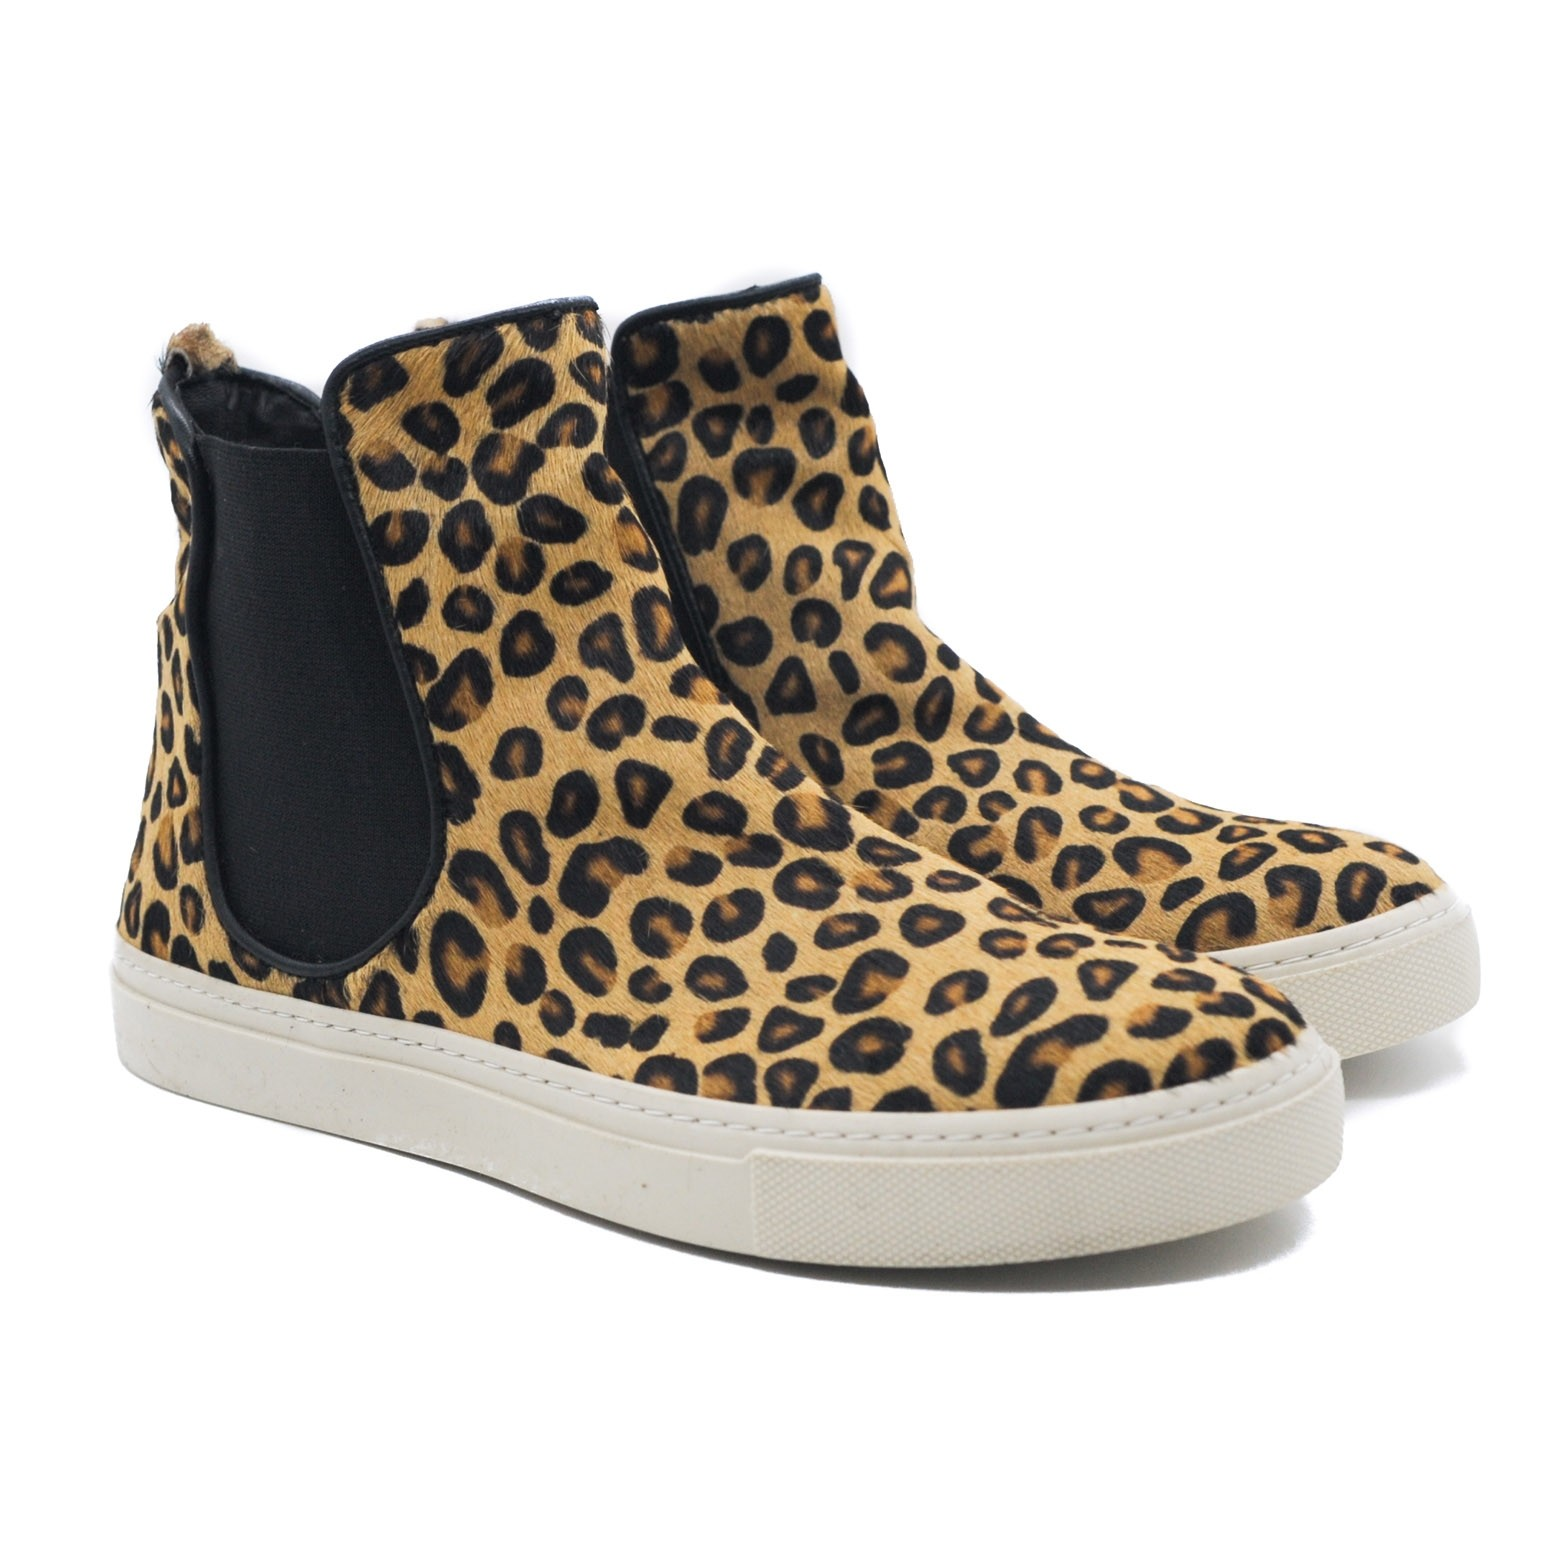 Pegia Animal Leopard Print High Trainer Ladies Shoes in Black and Tan